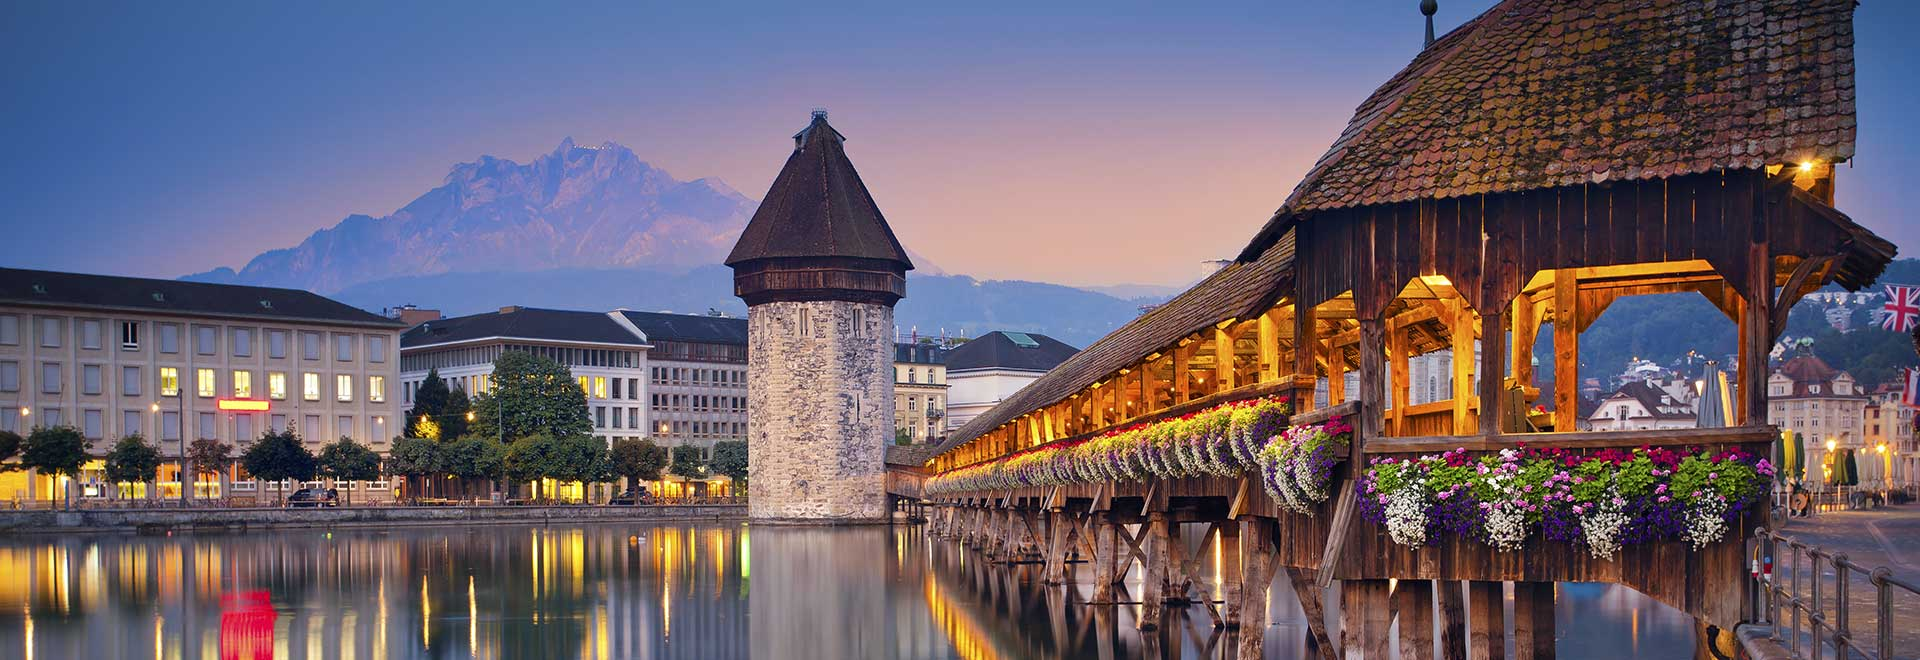 Europe Switzerland Lucerne